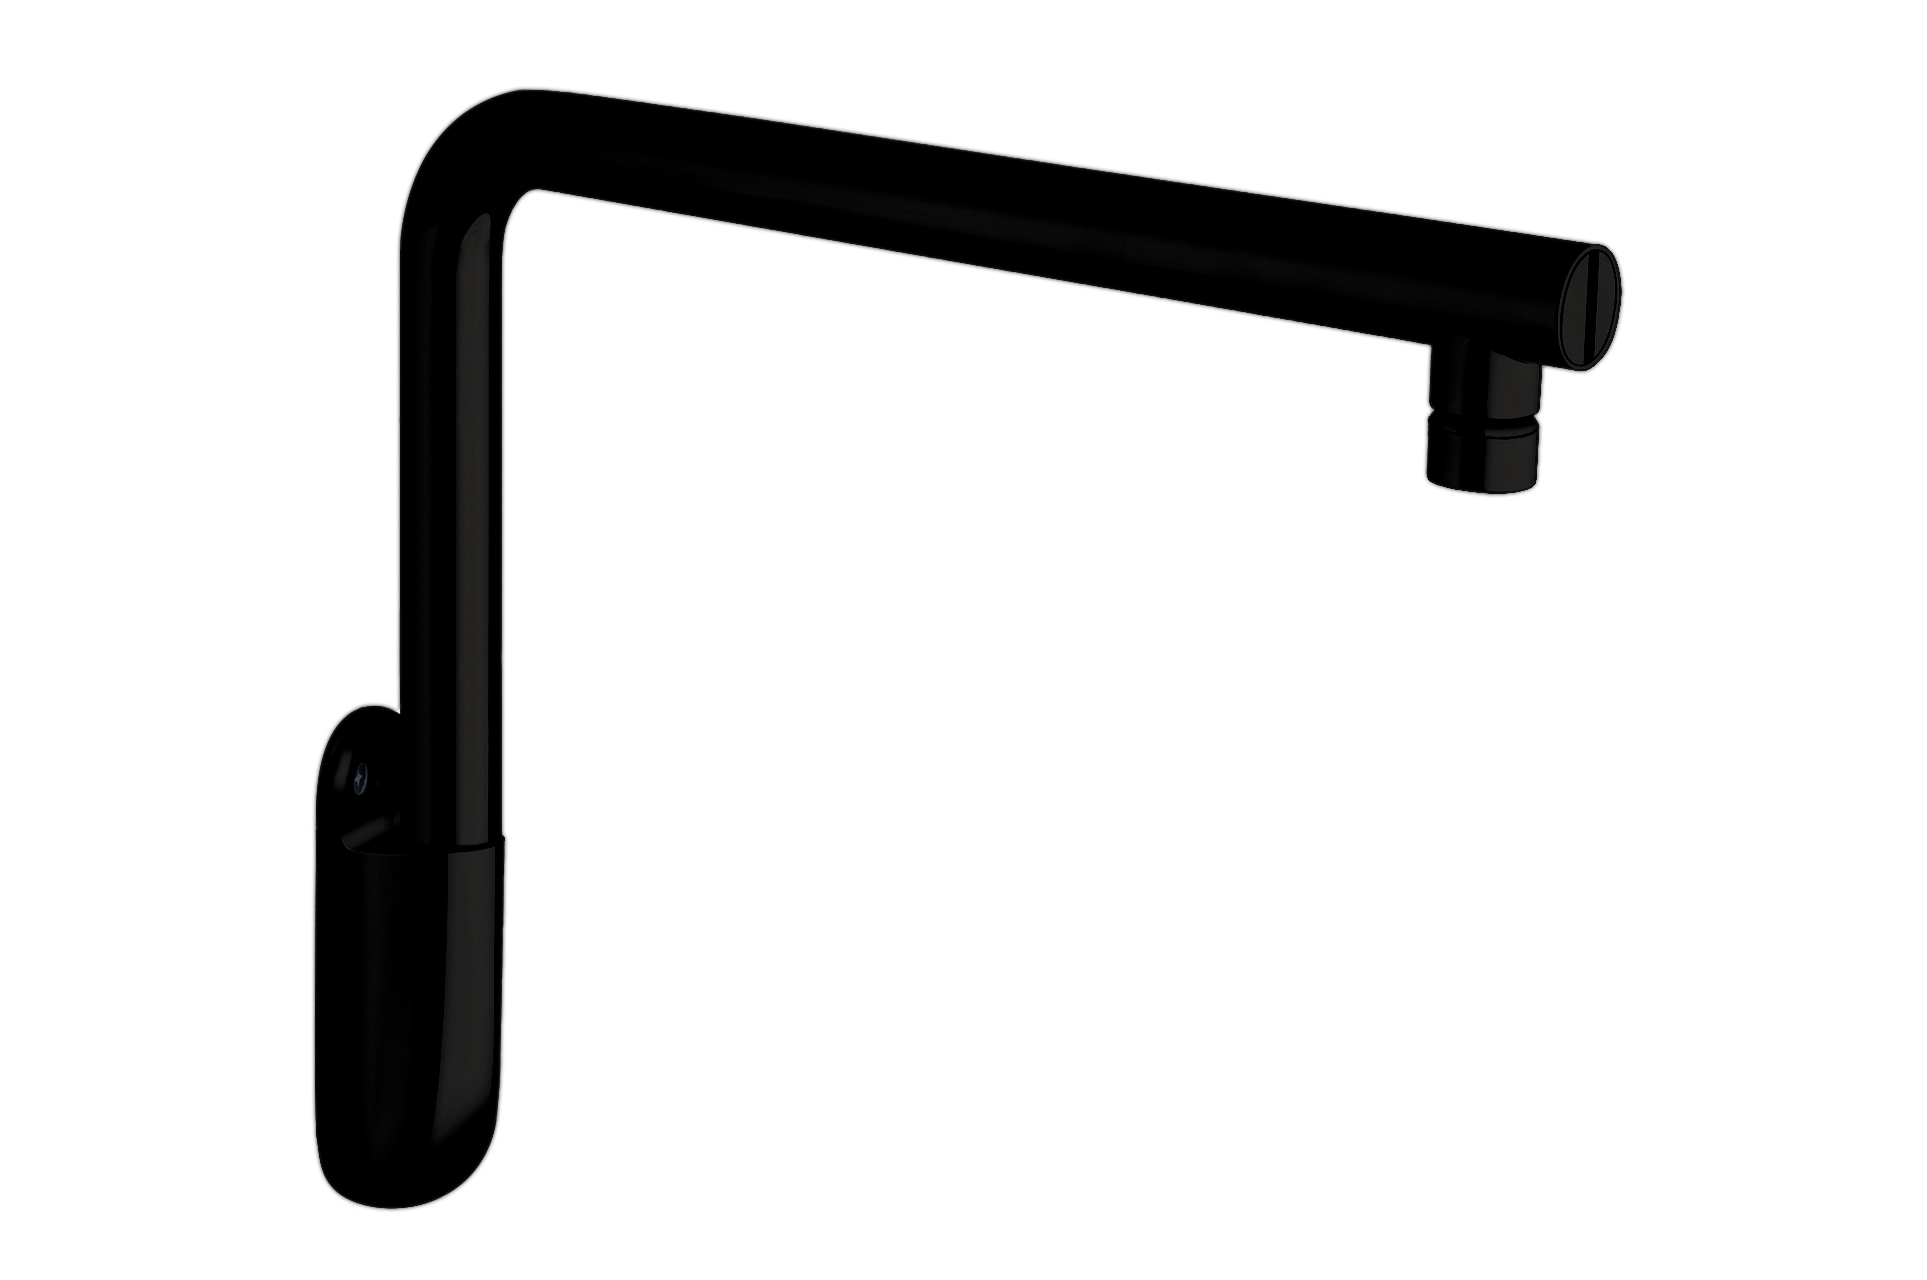 Low Wall Mounted Shower Arm Black Matte(main)